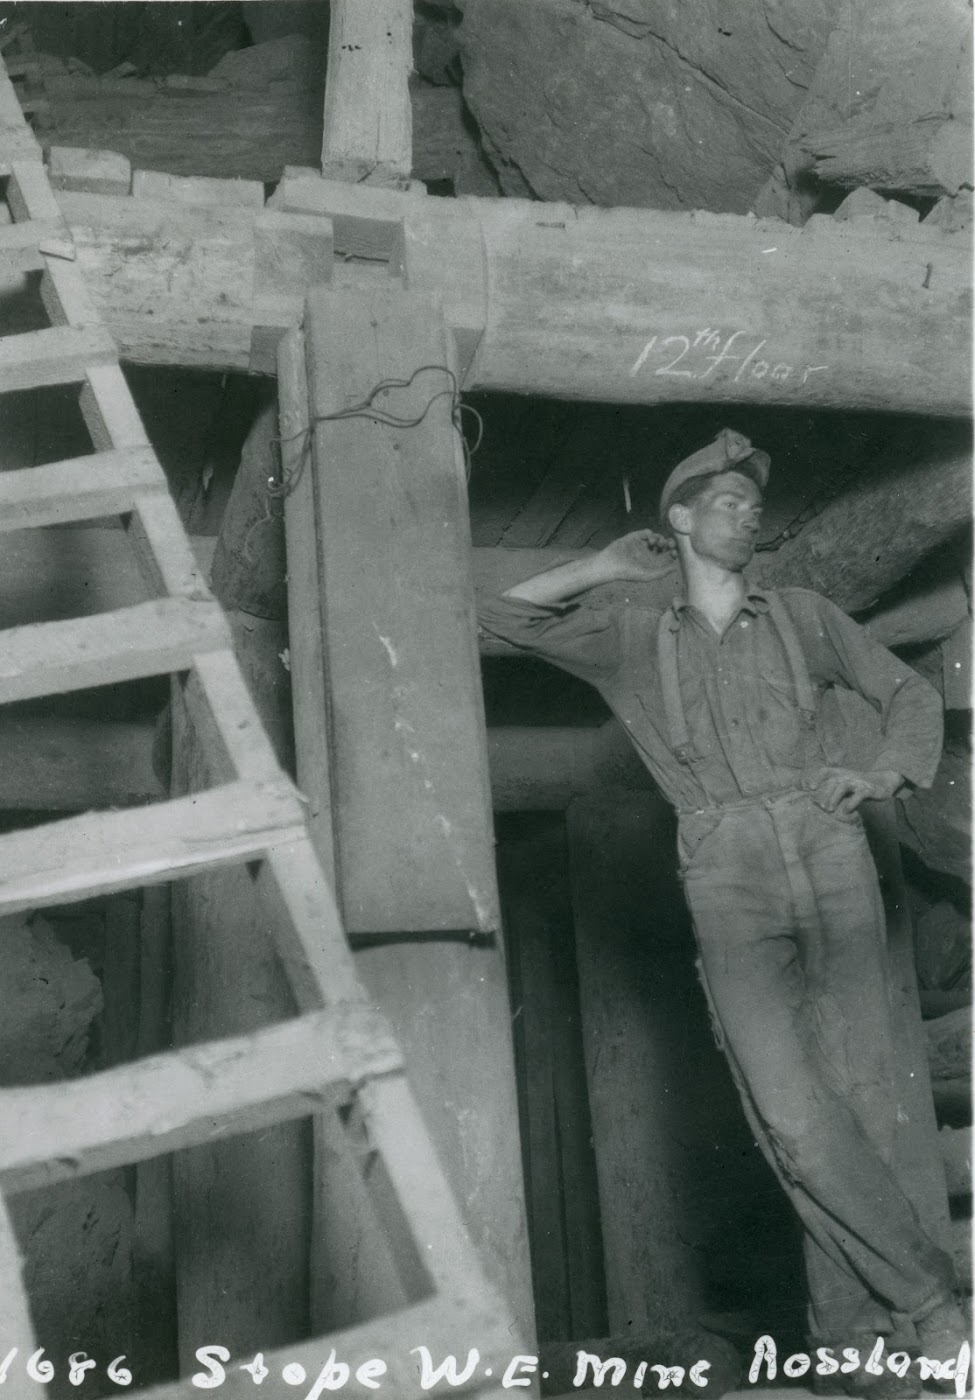 Photo 2304.0134: Miner in the LeRoi Mine, at stope #1686.